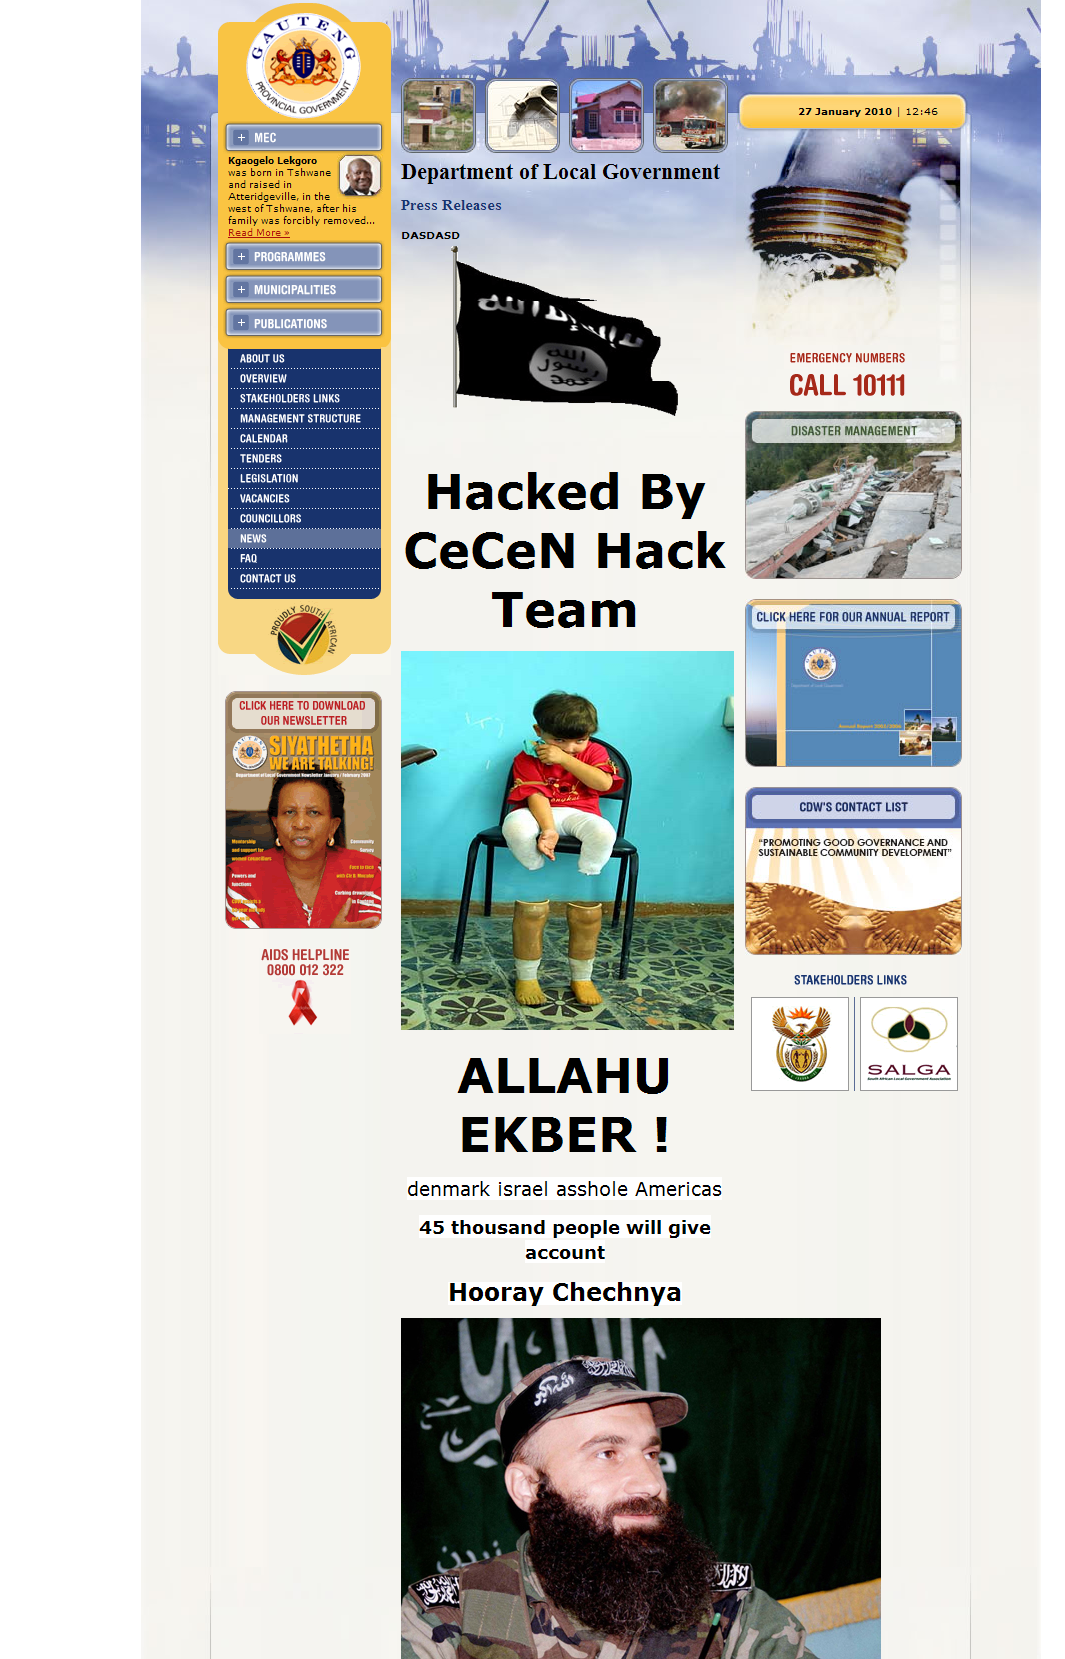 Gauteng Department of Local Government Site Hacked